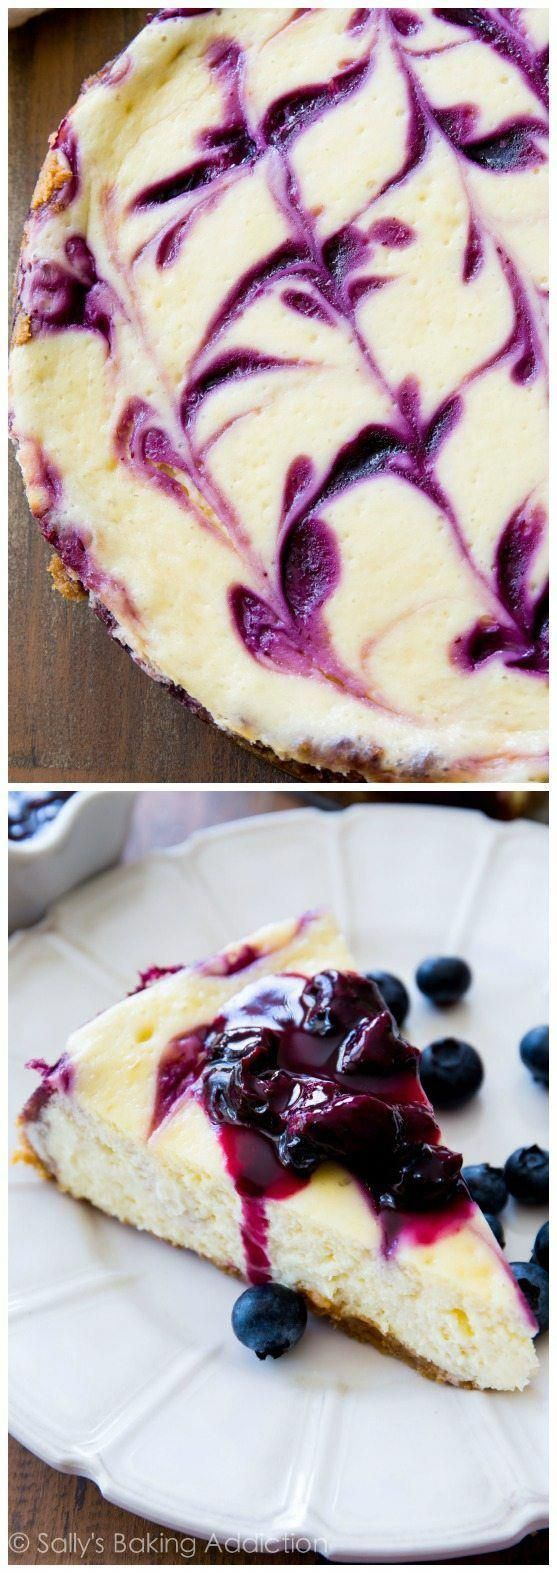 Ultra creamy homemade cheesecake swirled with a sweet blueberry swirl. All on top of my favorite buttery graham cracker crust! sallysbakingaddiction.com #cheesecakerecipes #homemadegrahamcrackercrust Ultra creamy homemade cheesecake swirled with a sweet blueberry swirl. All on top of my favorite buttery graham cracker crust! sallysbakingaddiction.com #cheesecakerecipes #homemadegrahamcrackercrust